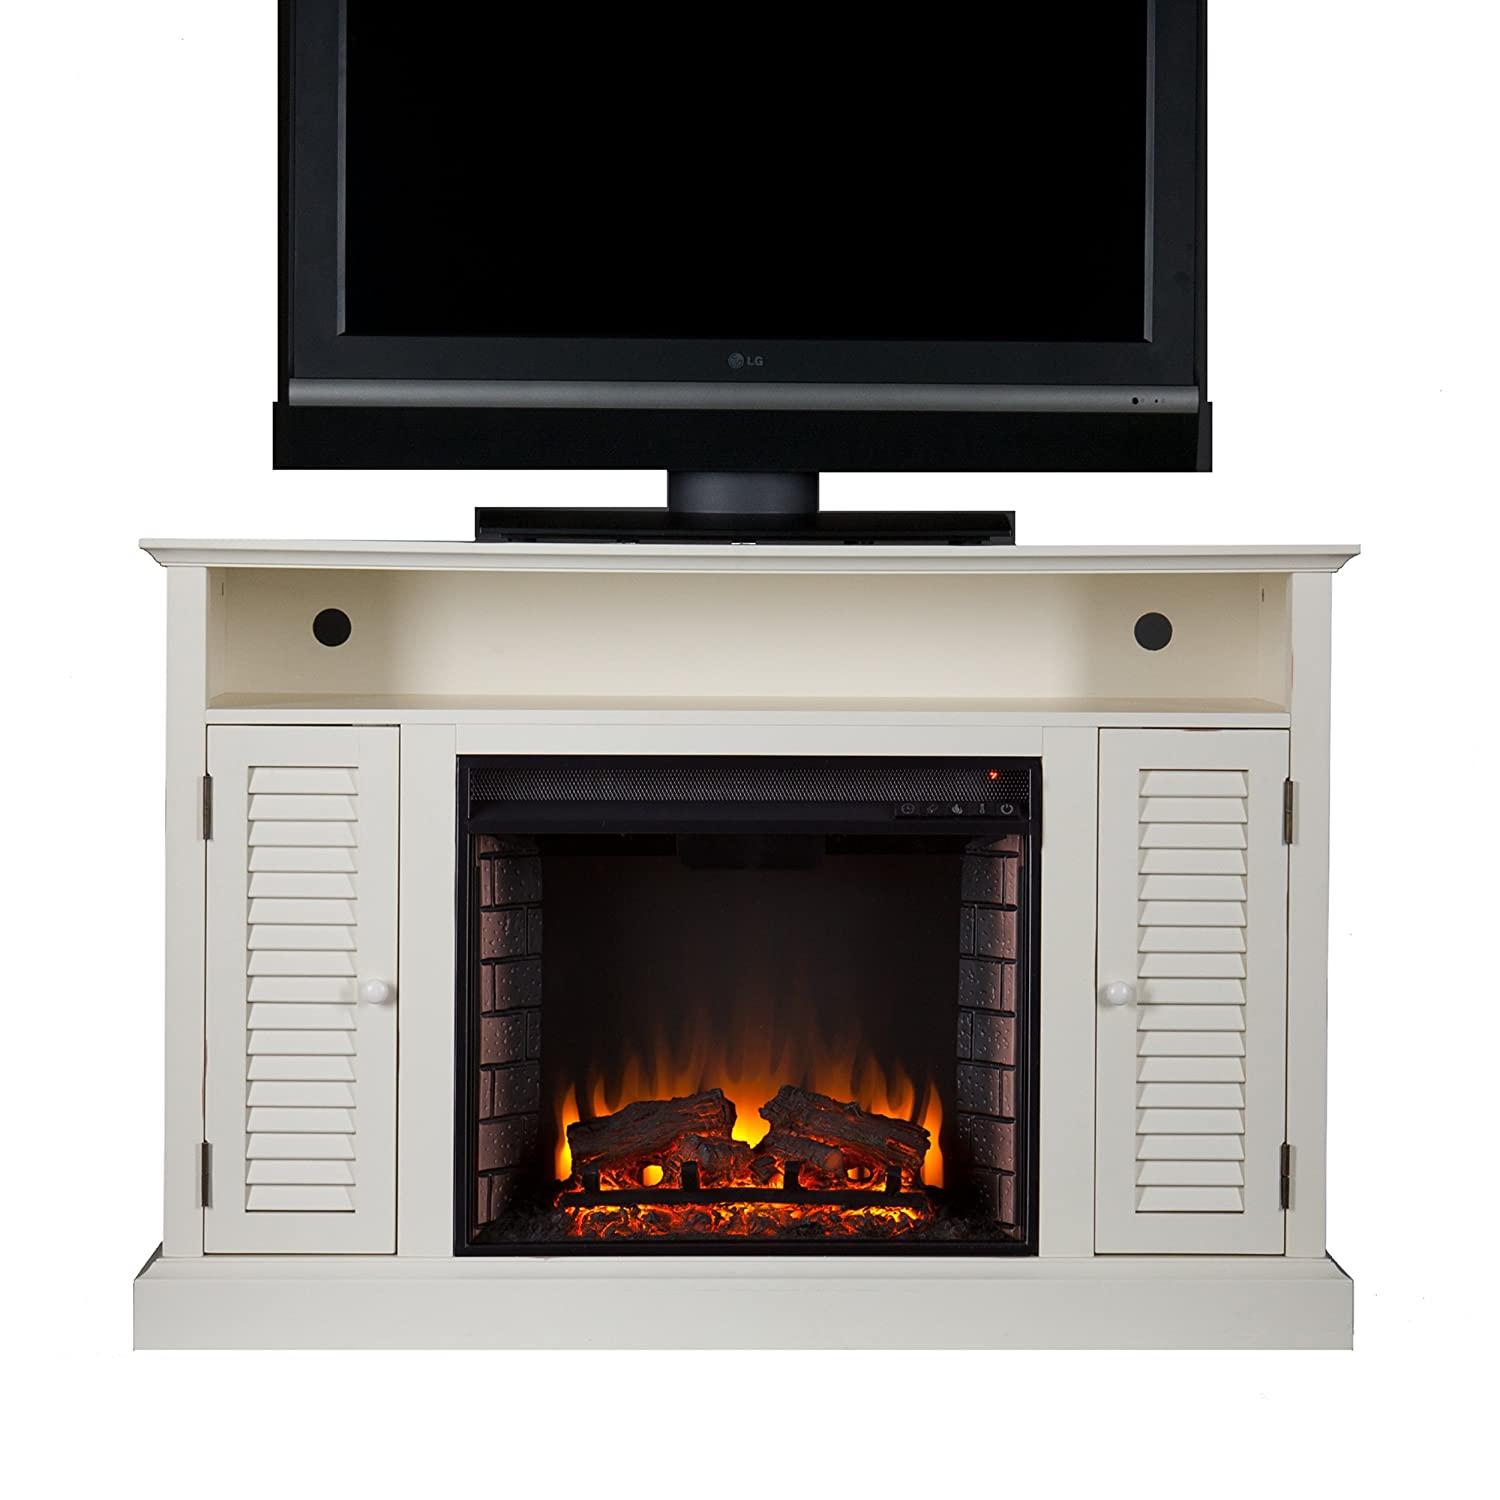 Southern Enterprises Antebellum Media Electric Fireplace 48 Wide, Antique White Finish